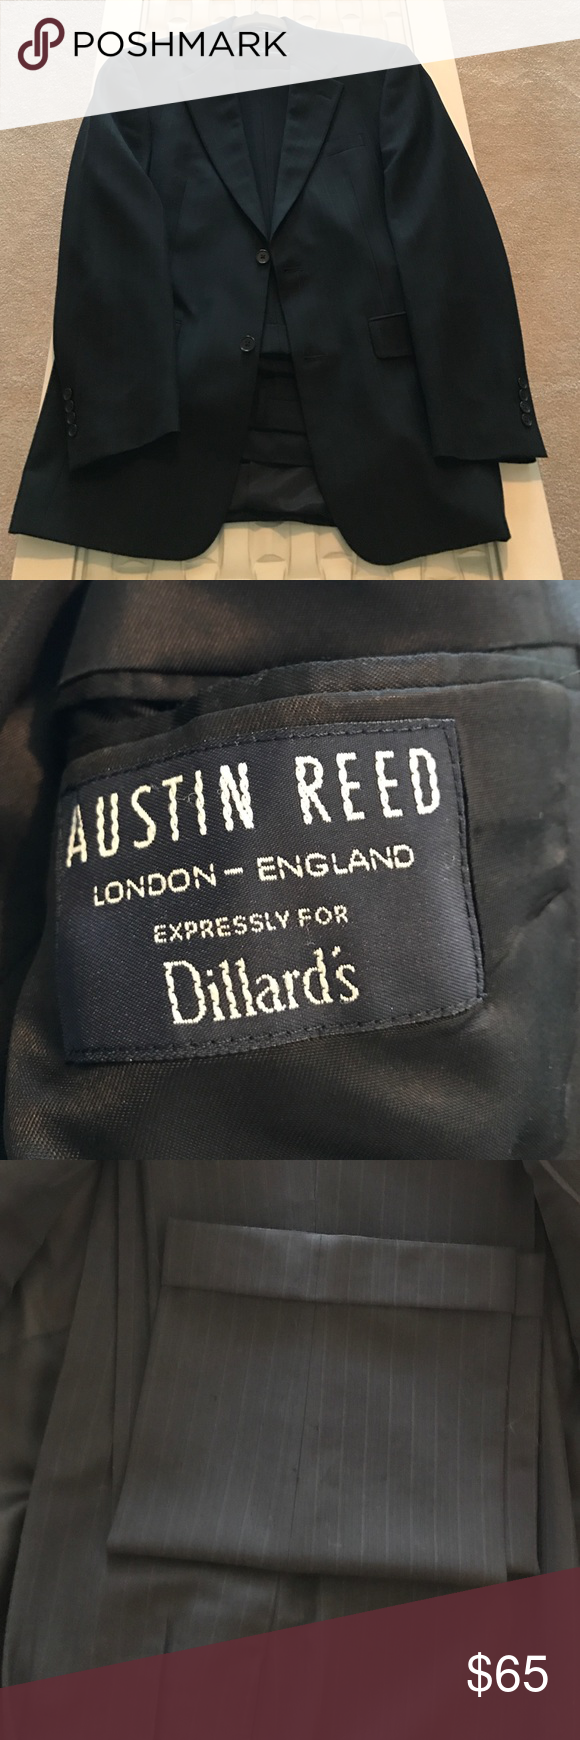 Austin Reed Pant Suit Austin Reed Black Pin Strip Suit Jacket Is A 38 Regular There S No Tag On The Pants But Know They Are A 32x Pantsuit Austin Reed Pants